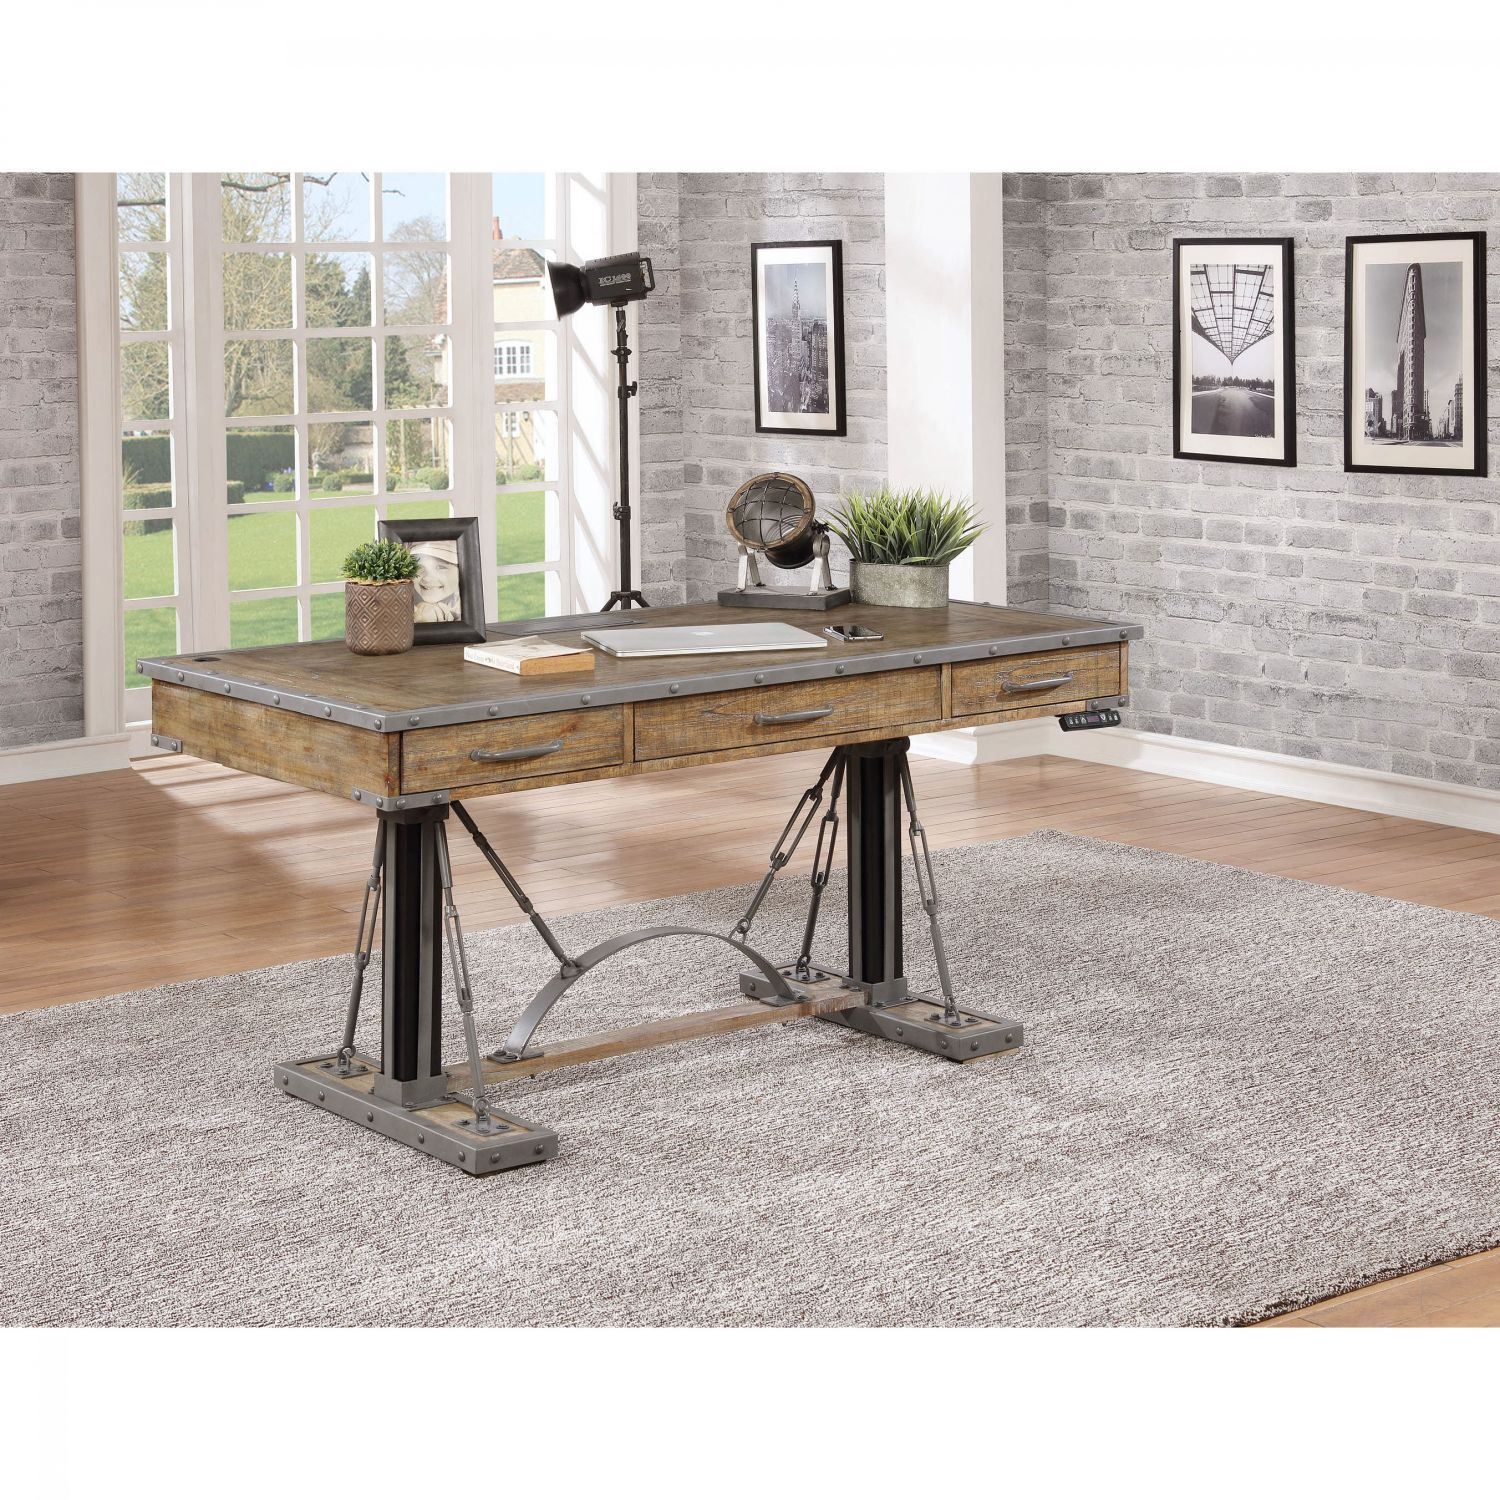 Artisan Revival 60-Inch Sit and Stand Desk